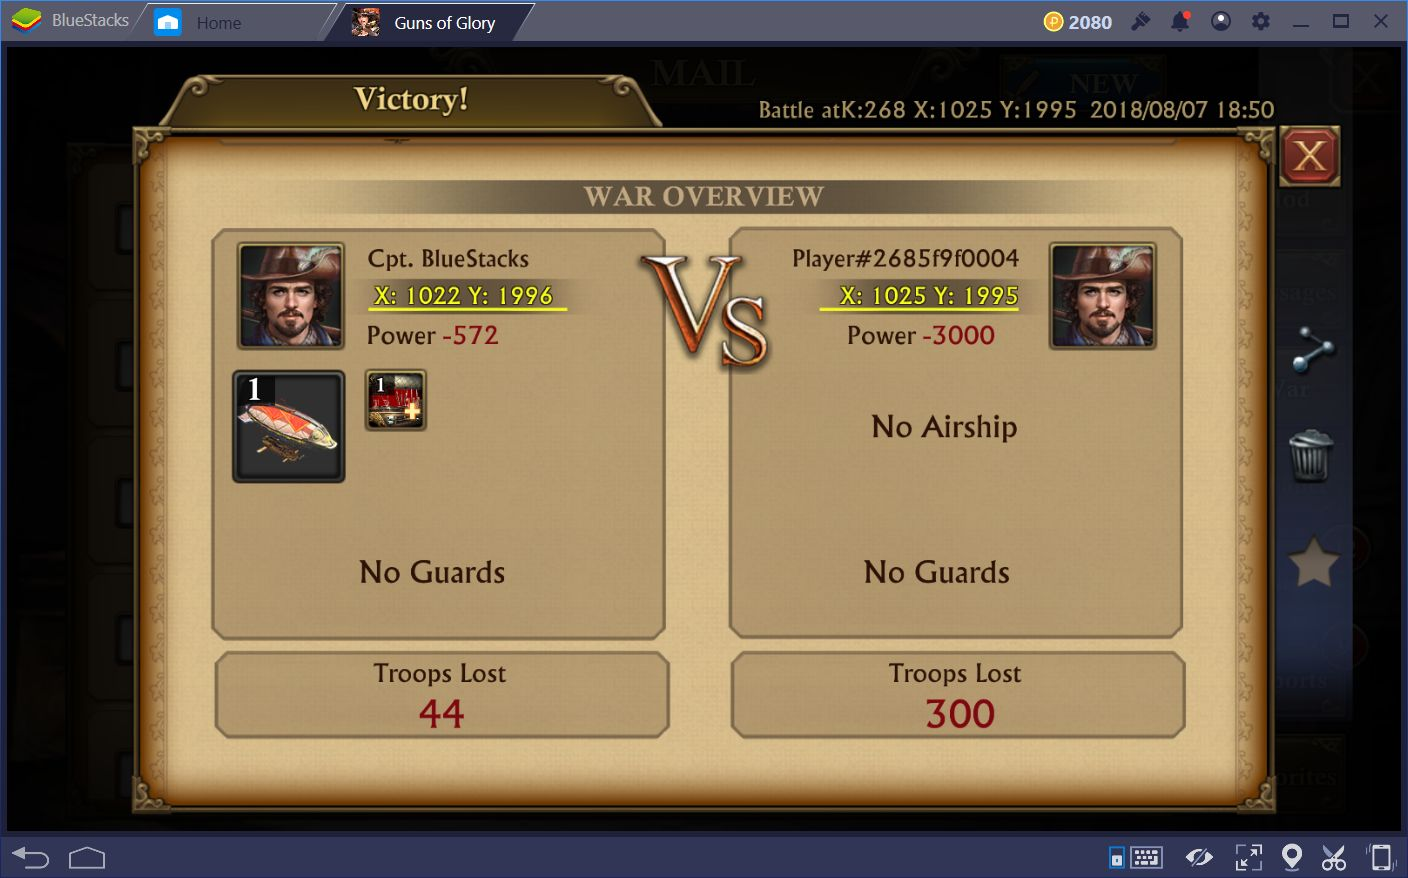 Guns of Glory on PC: Combat Guide – Pt. 2